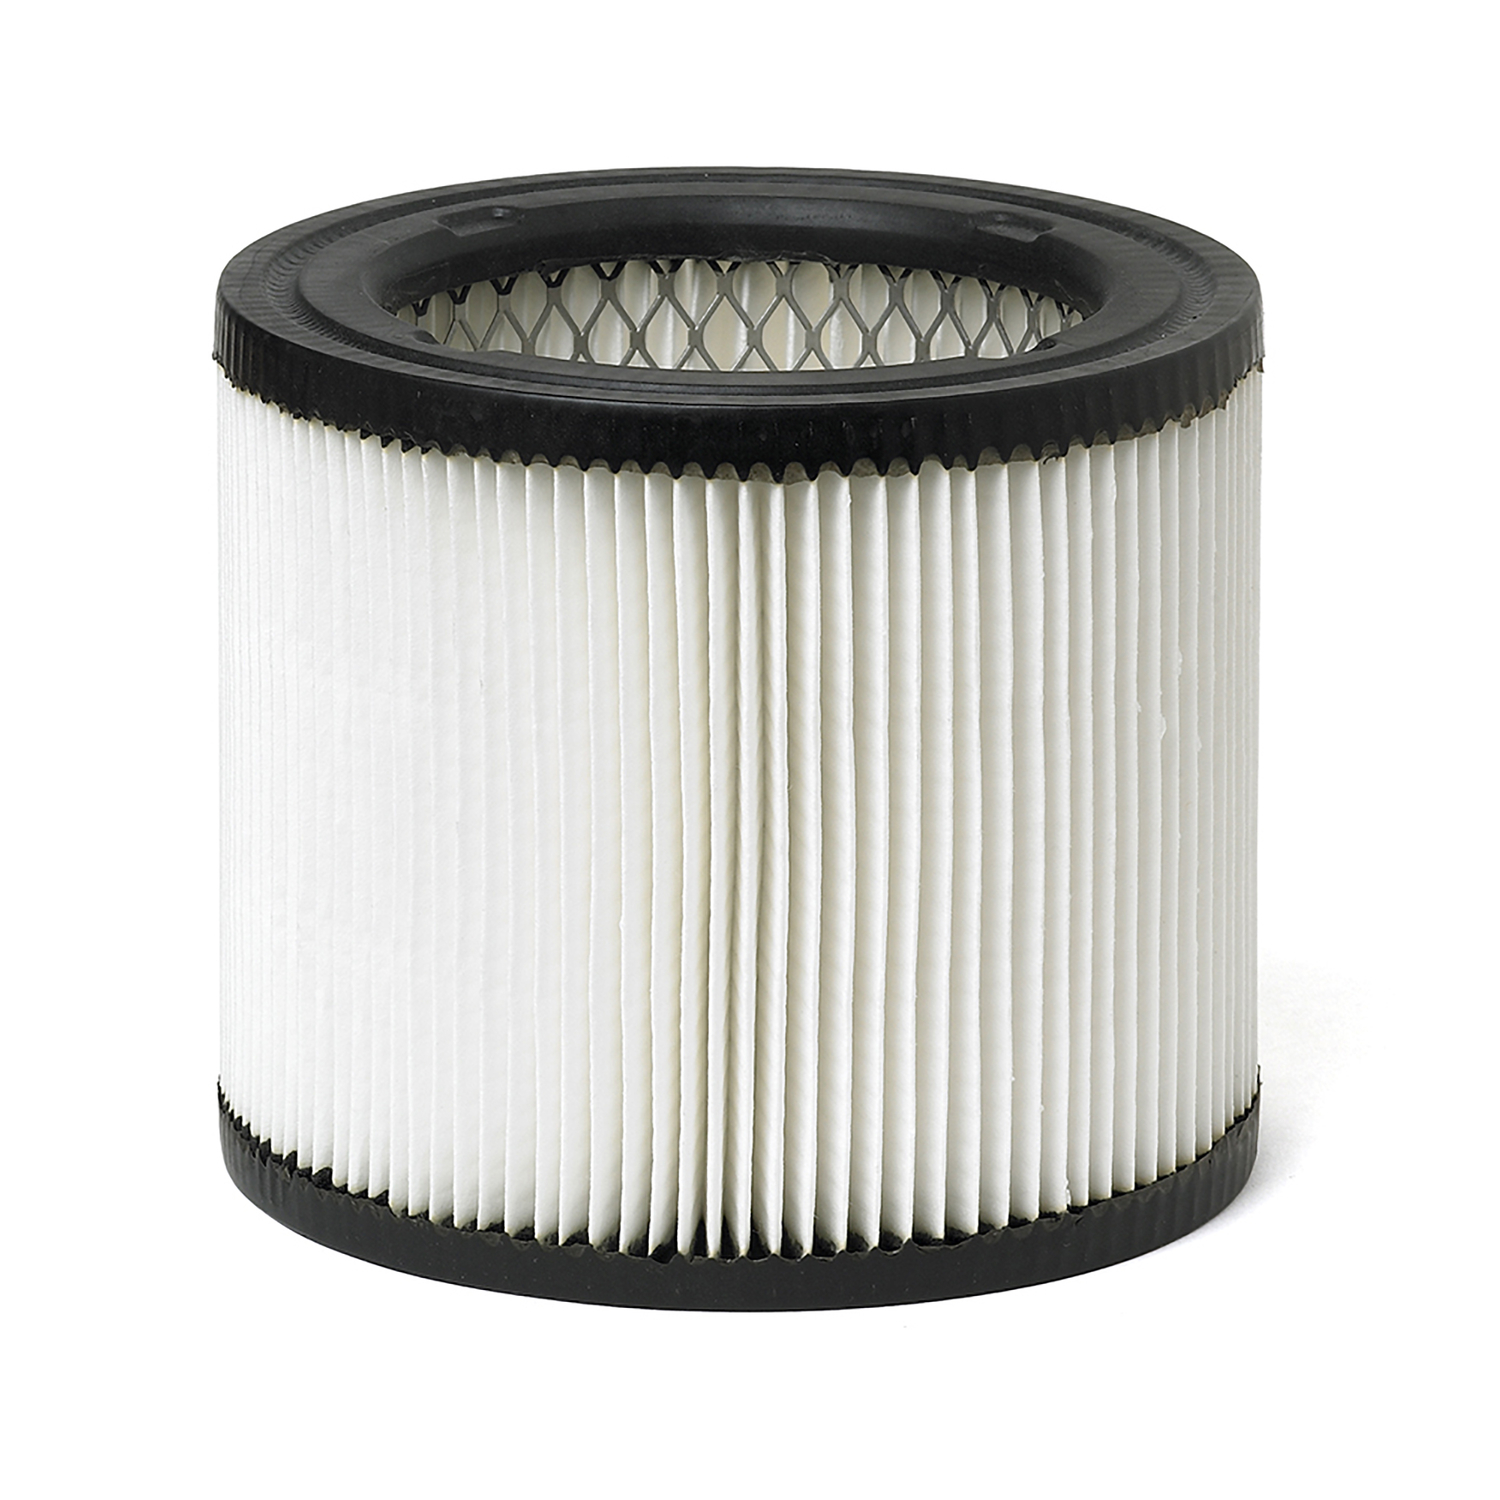 Craftsman  6  L x 6 in. W x 5-5/8 in. Dia. Wall Vac Filter  White  1 pk